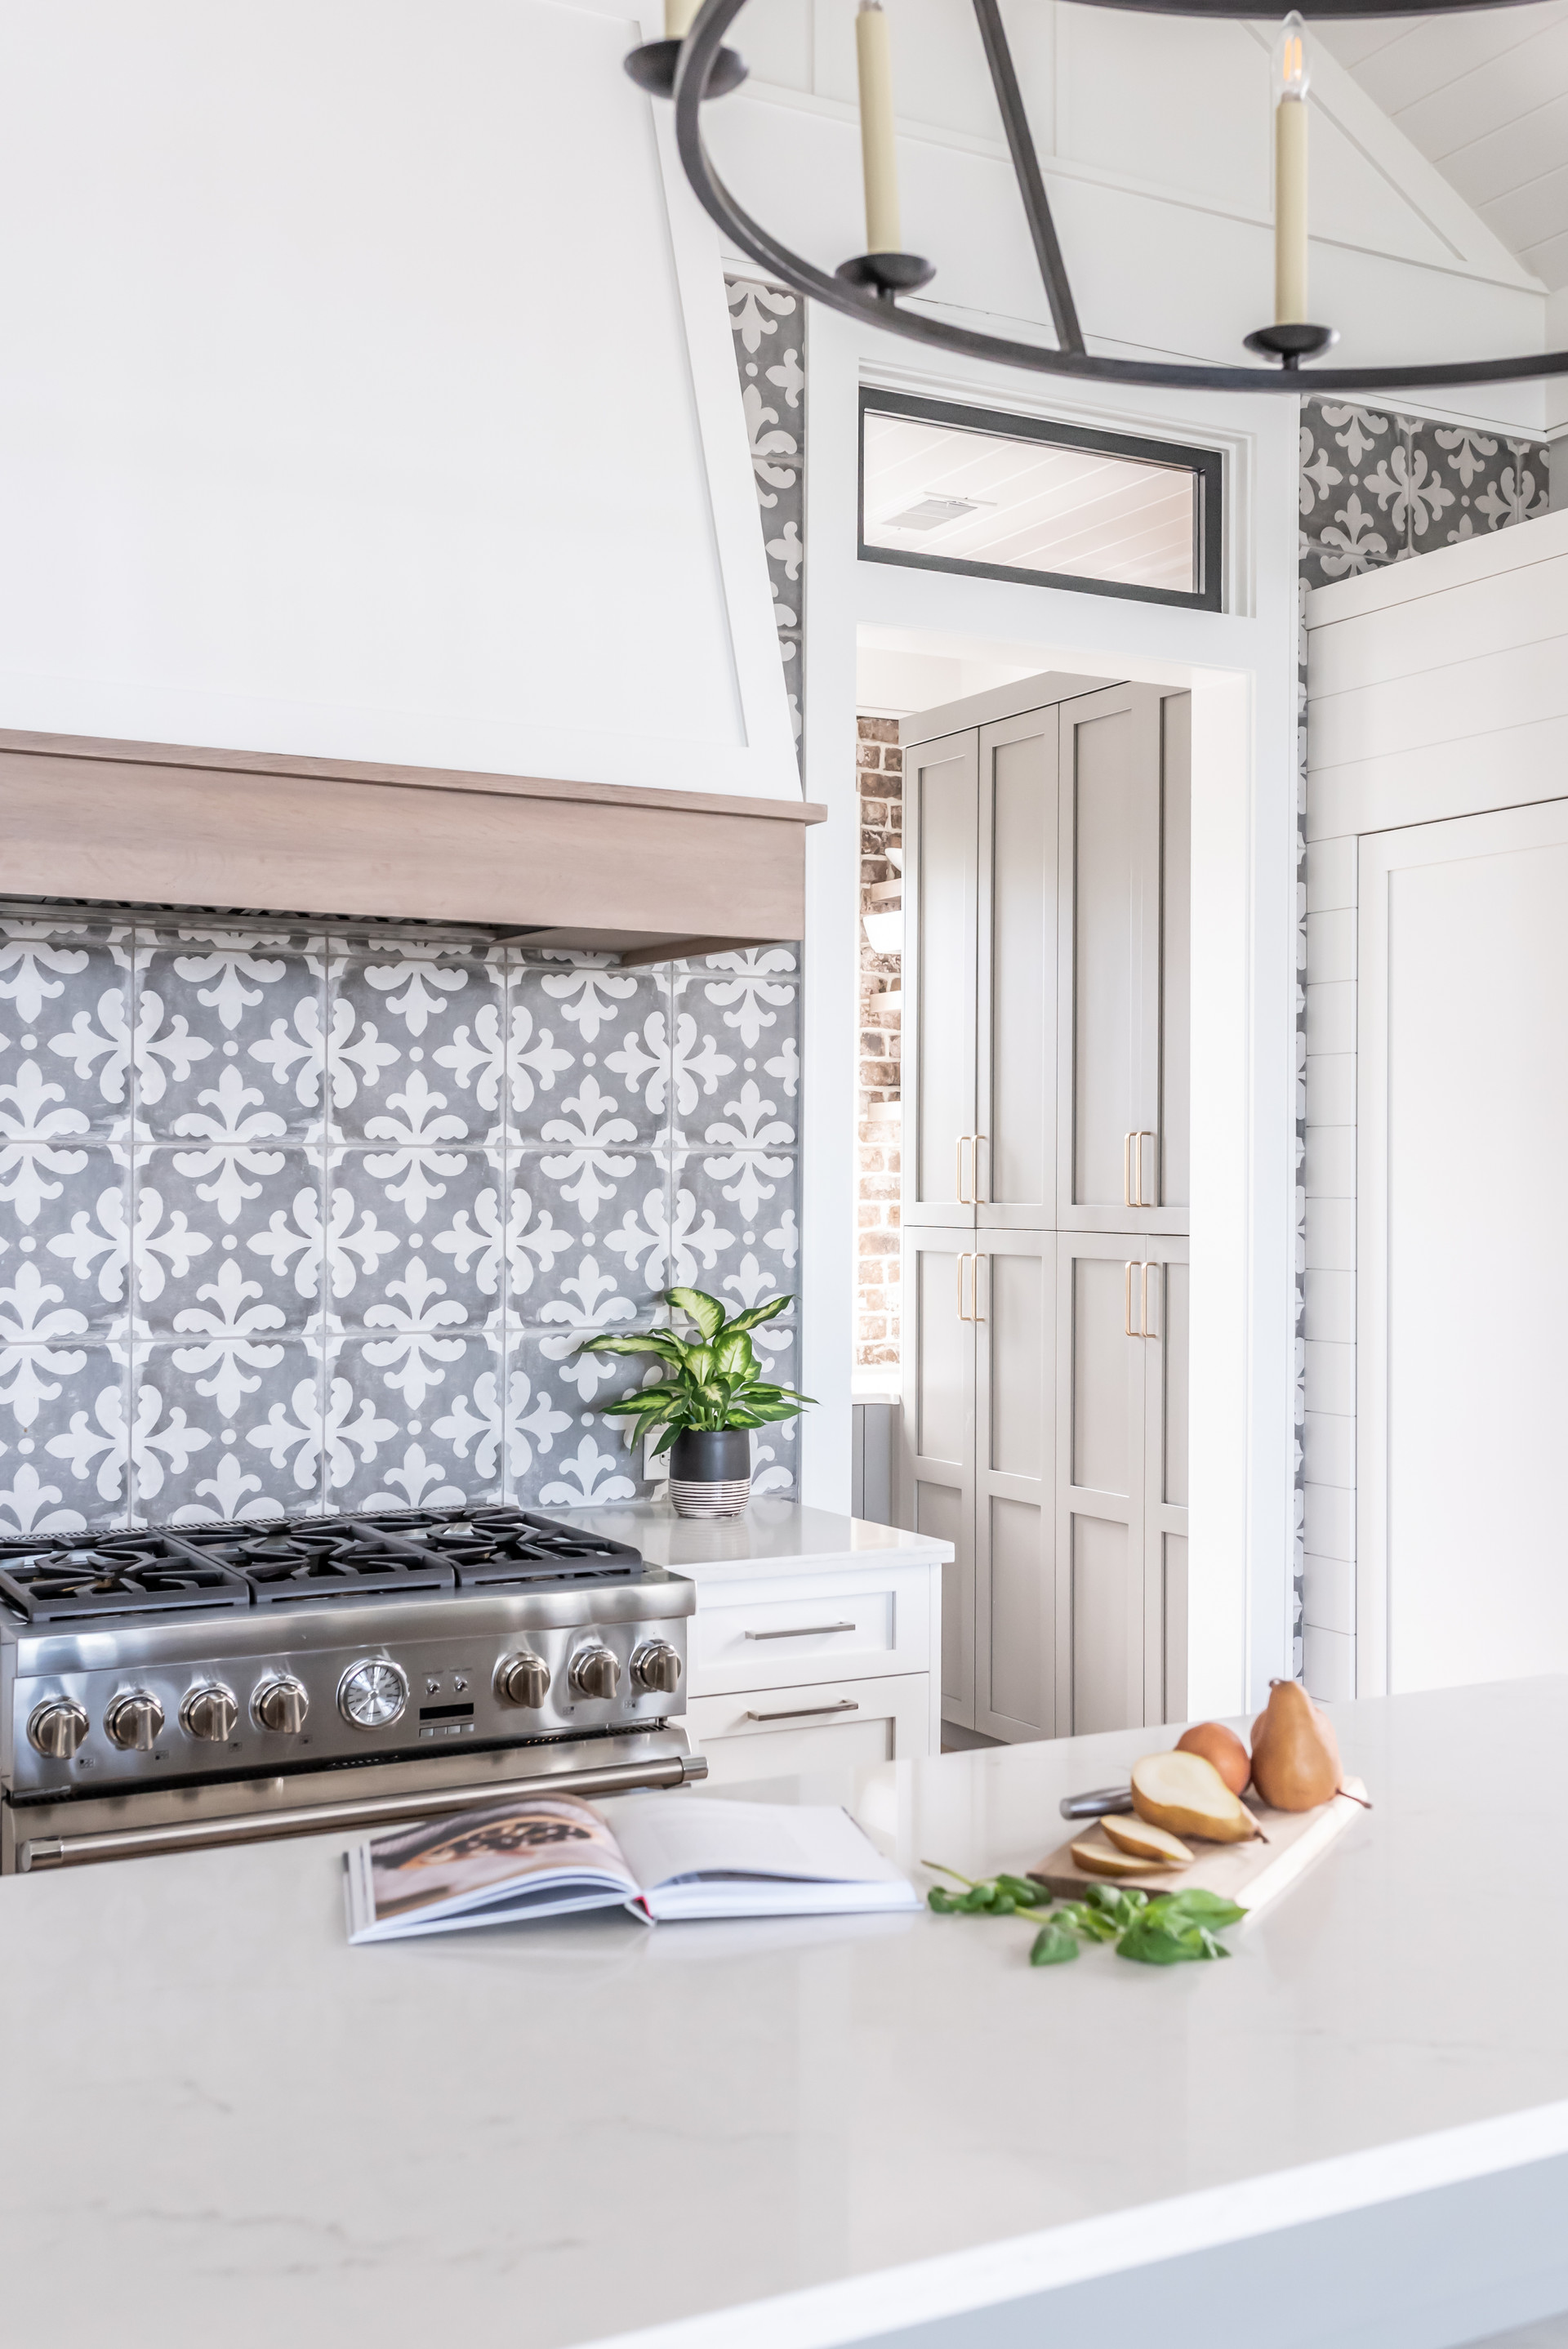 ADC-May1-2019-Kitchen-15.jpg